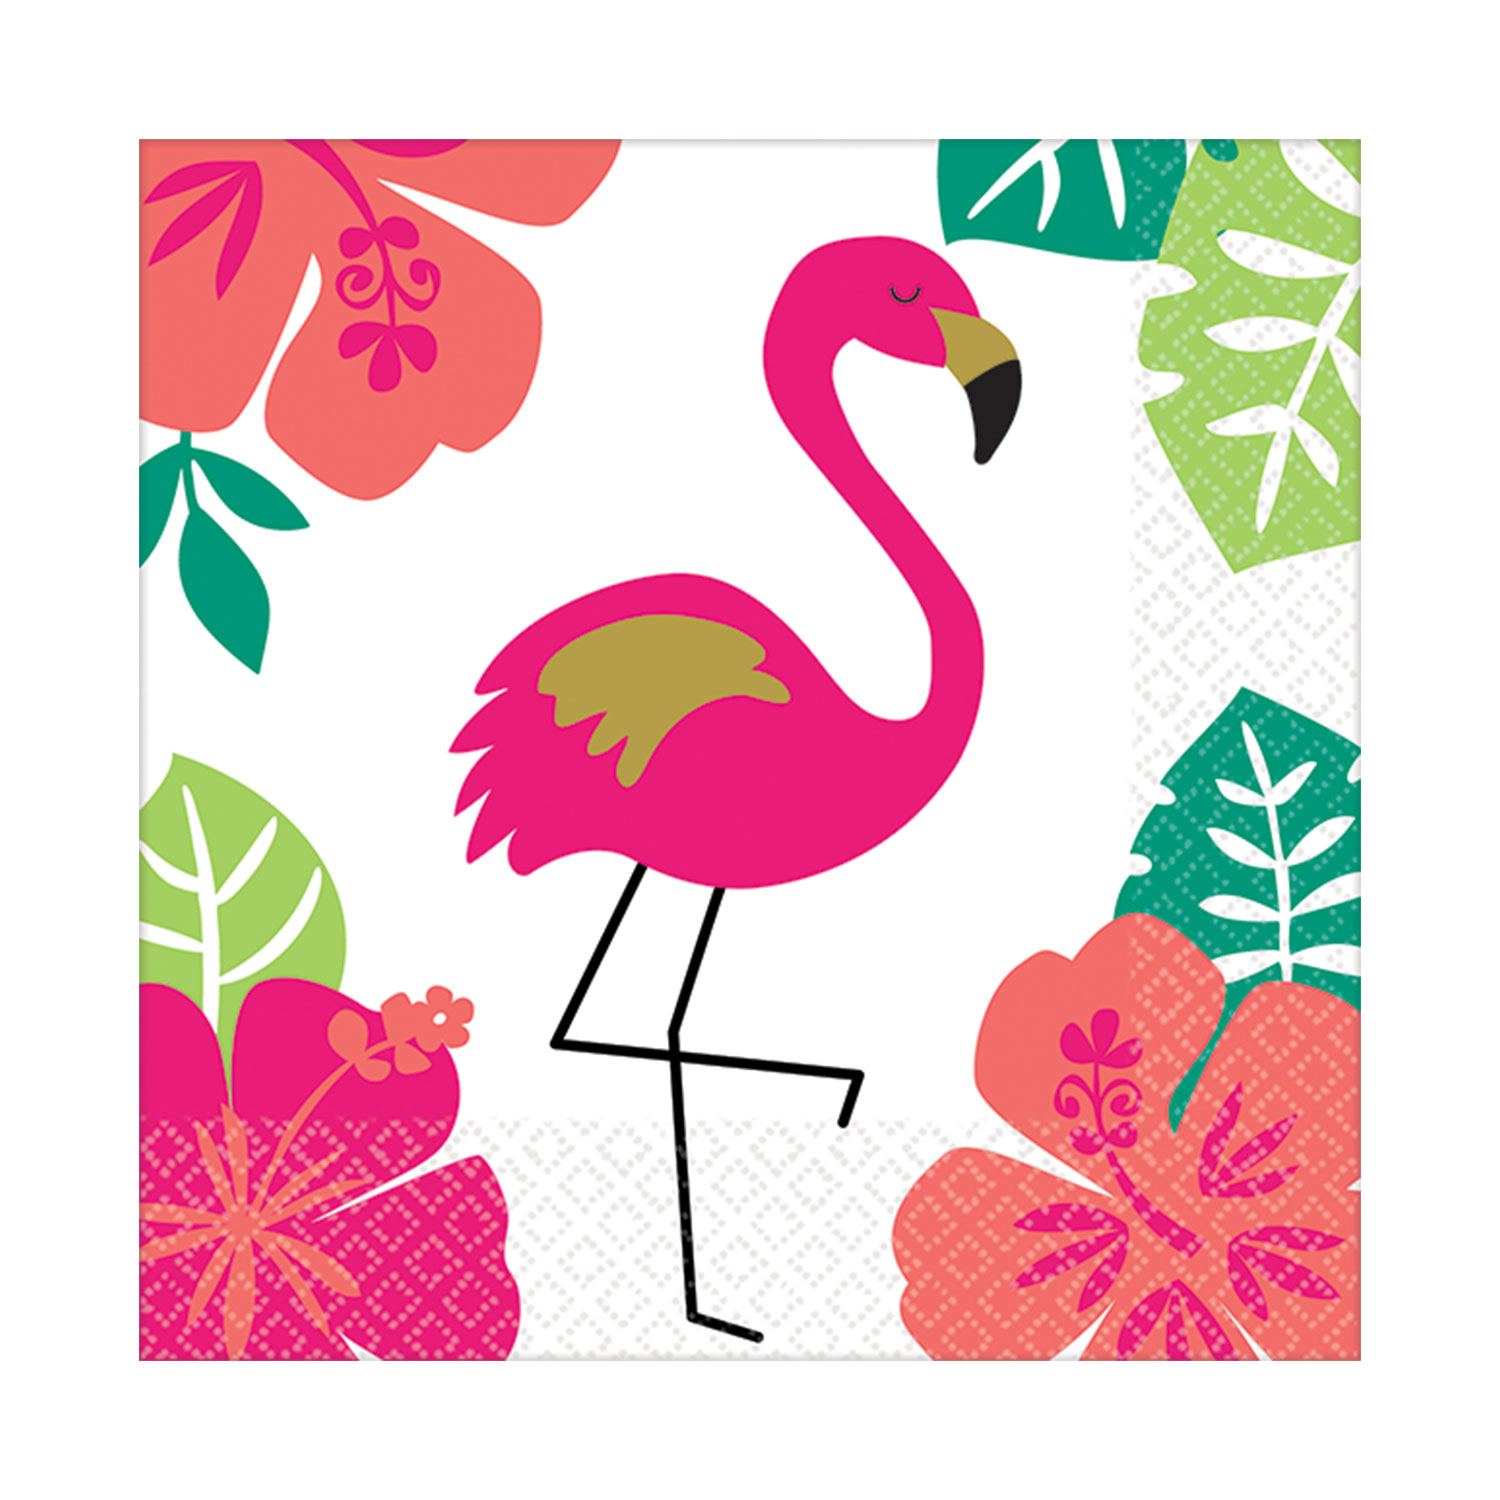 Canape Design Hawaii Details About 16 X Hawaiian Aloha Pink Flamingo Beverage Canape Drinks Napkins Tableware